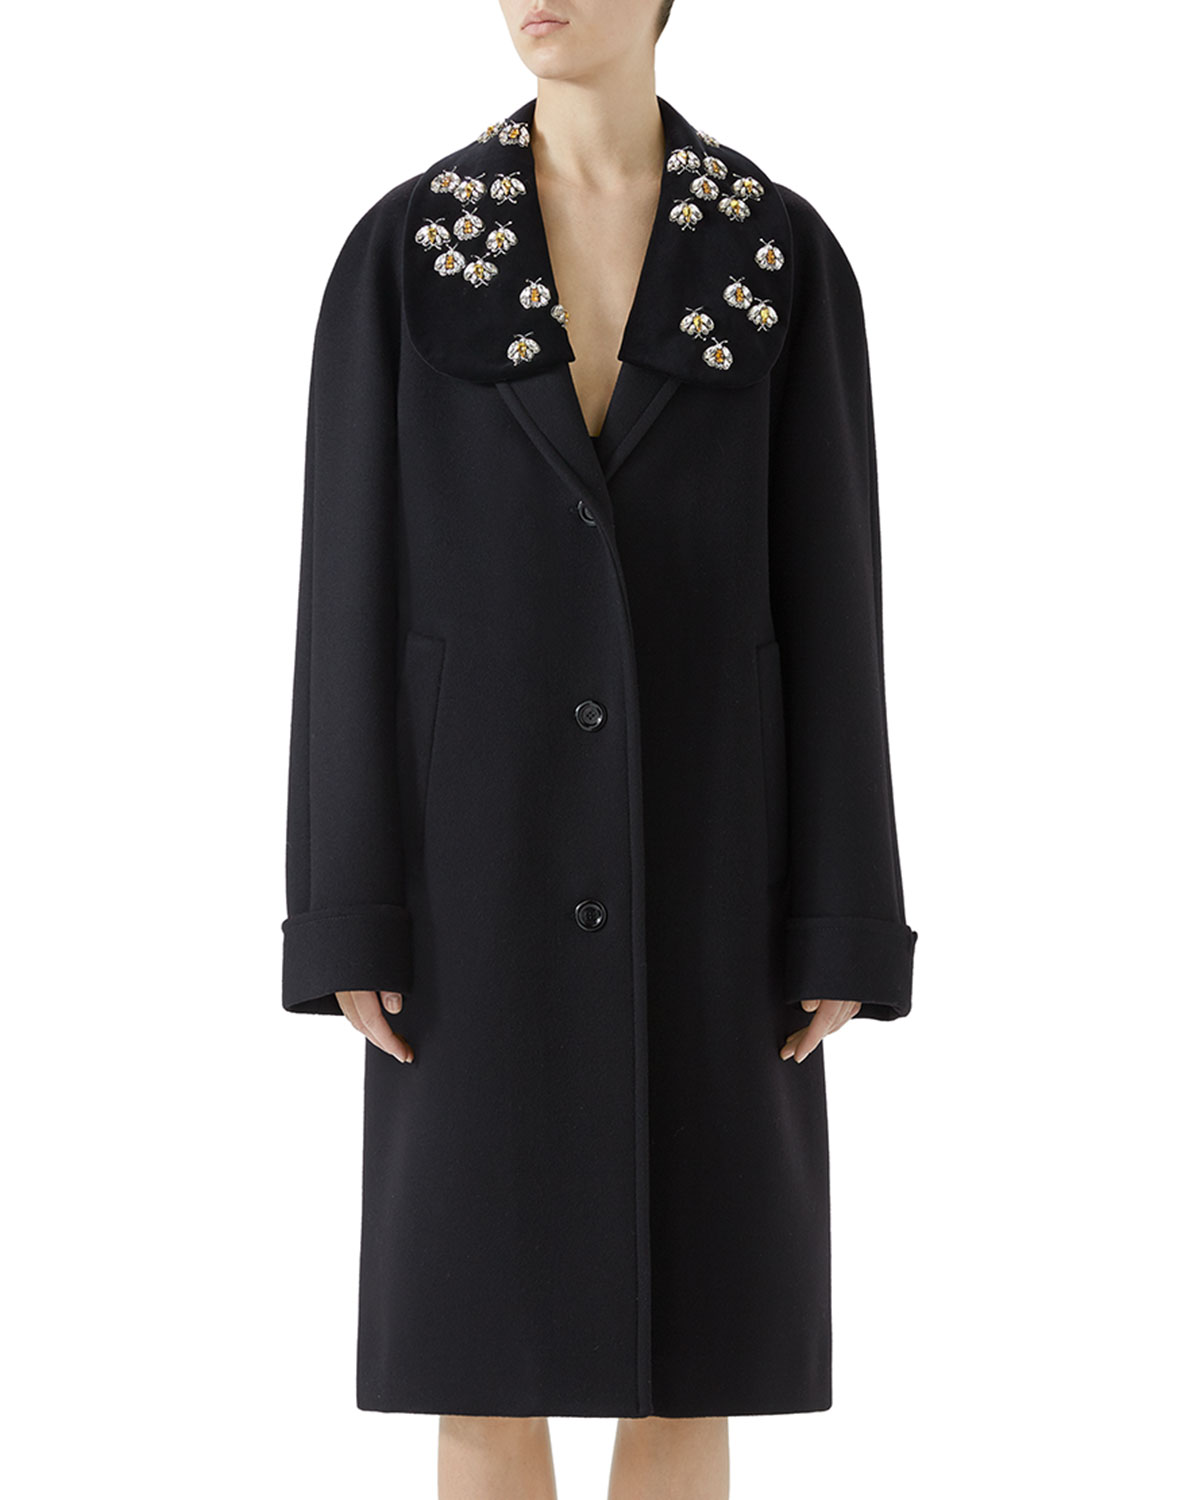 Bee Embroidered Wool Overcoat in Black